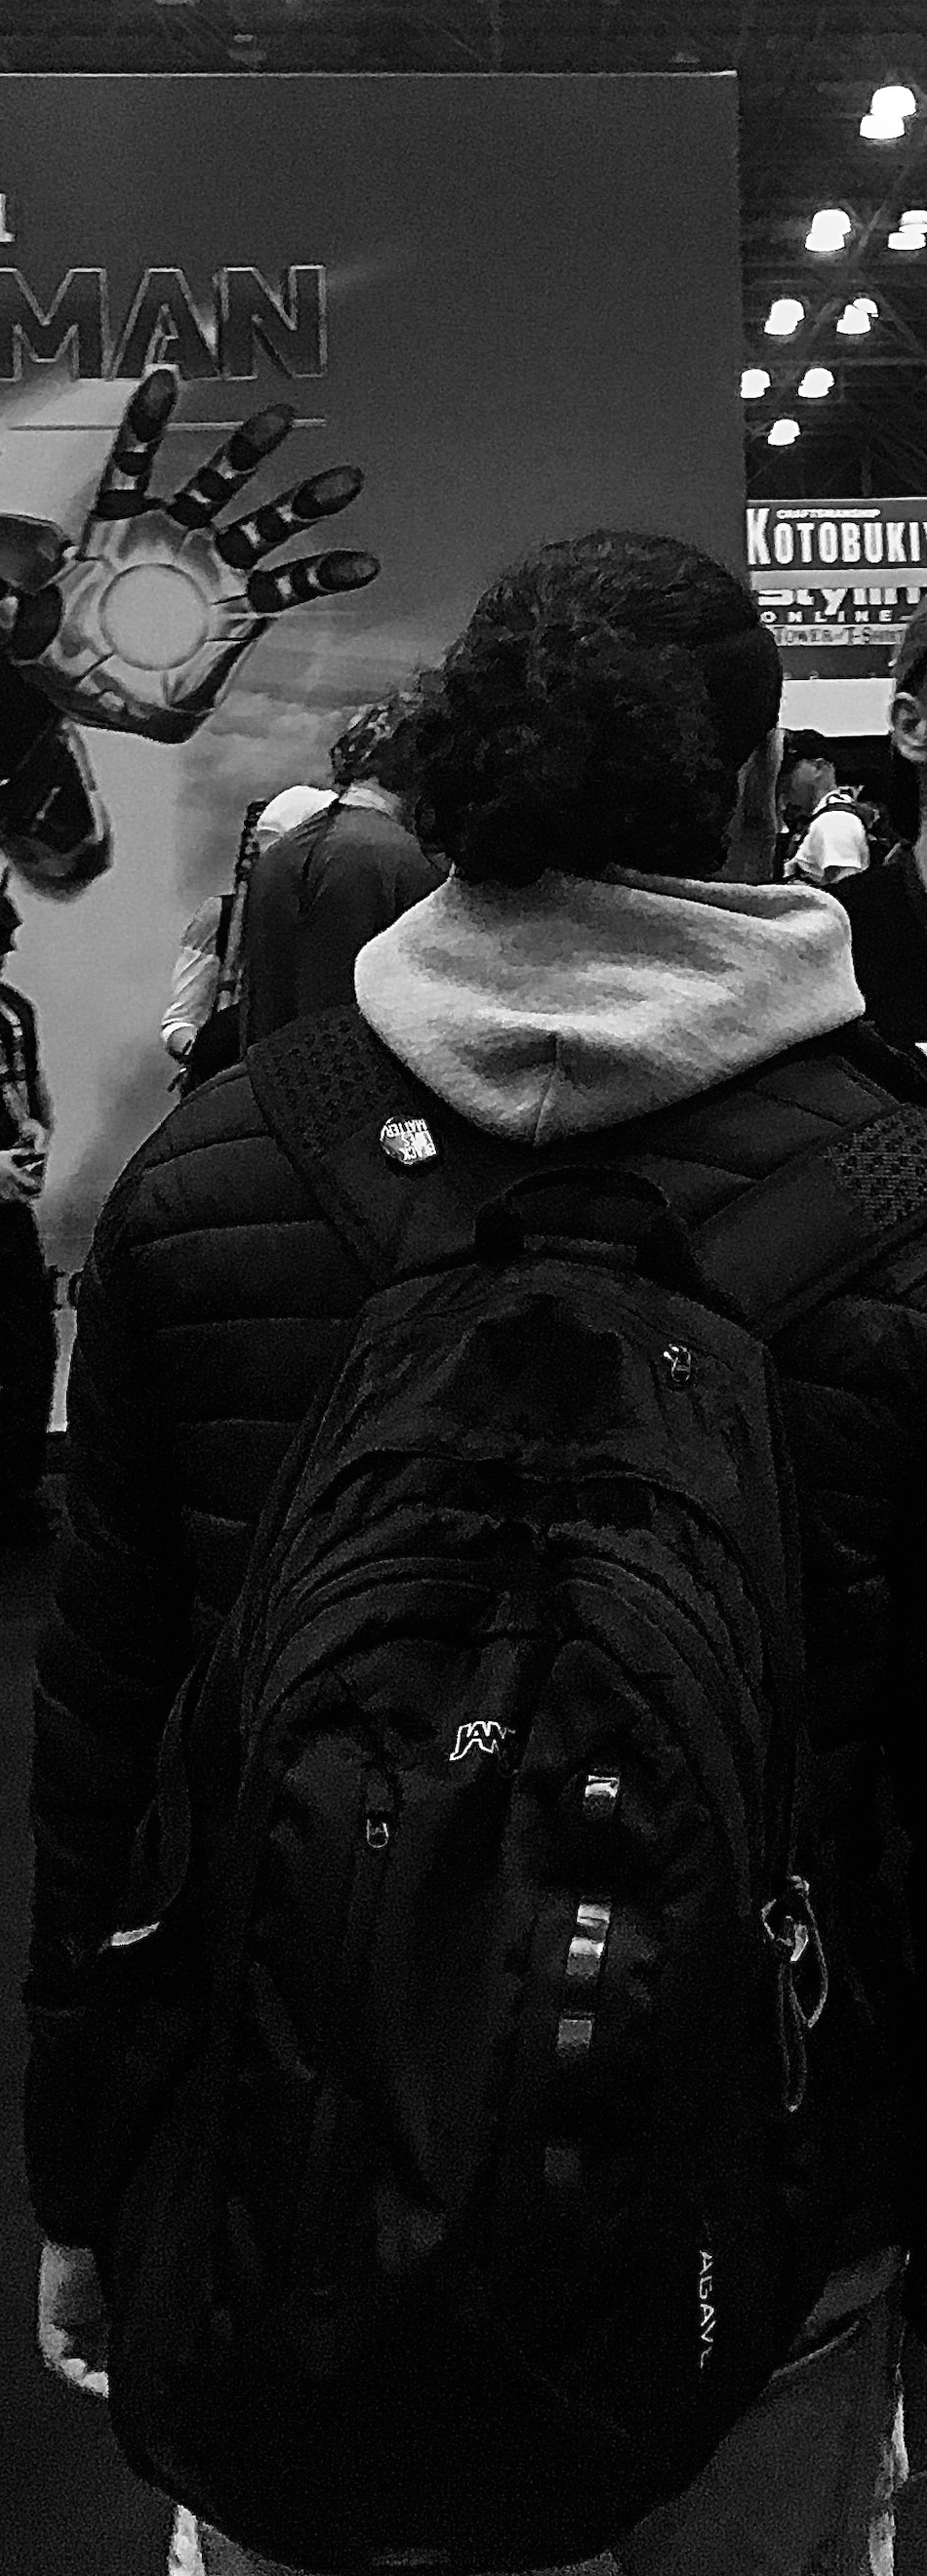 Black and white photo of the author from behind, wearing a ponytail and a backpack. Photo courtesy of the author.